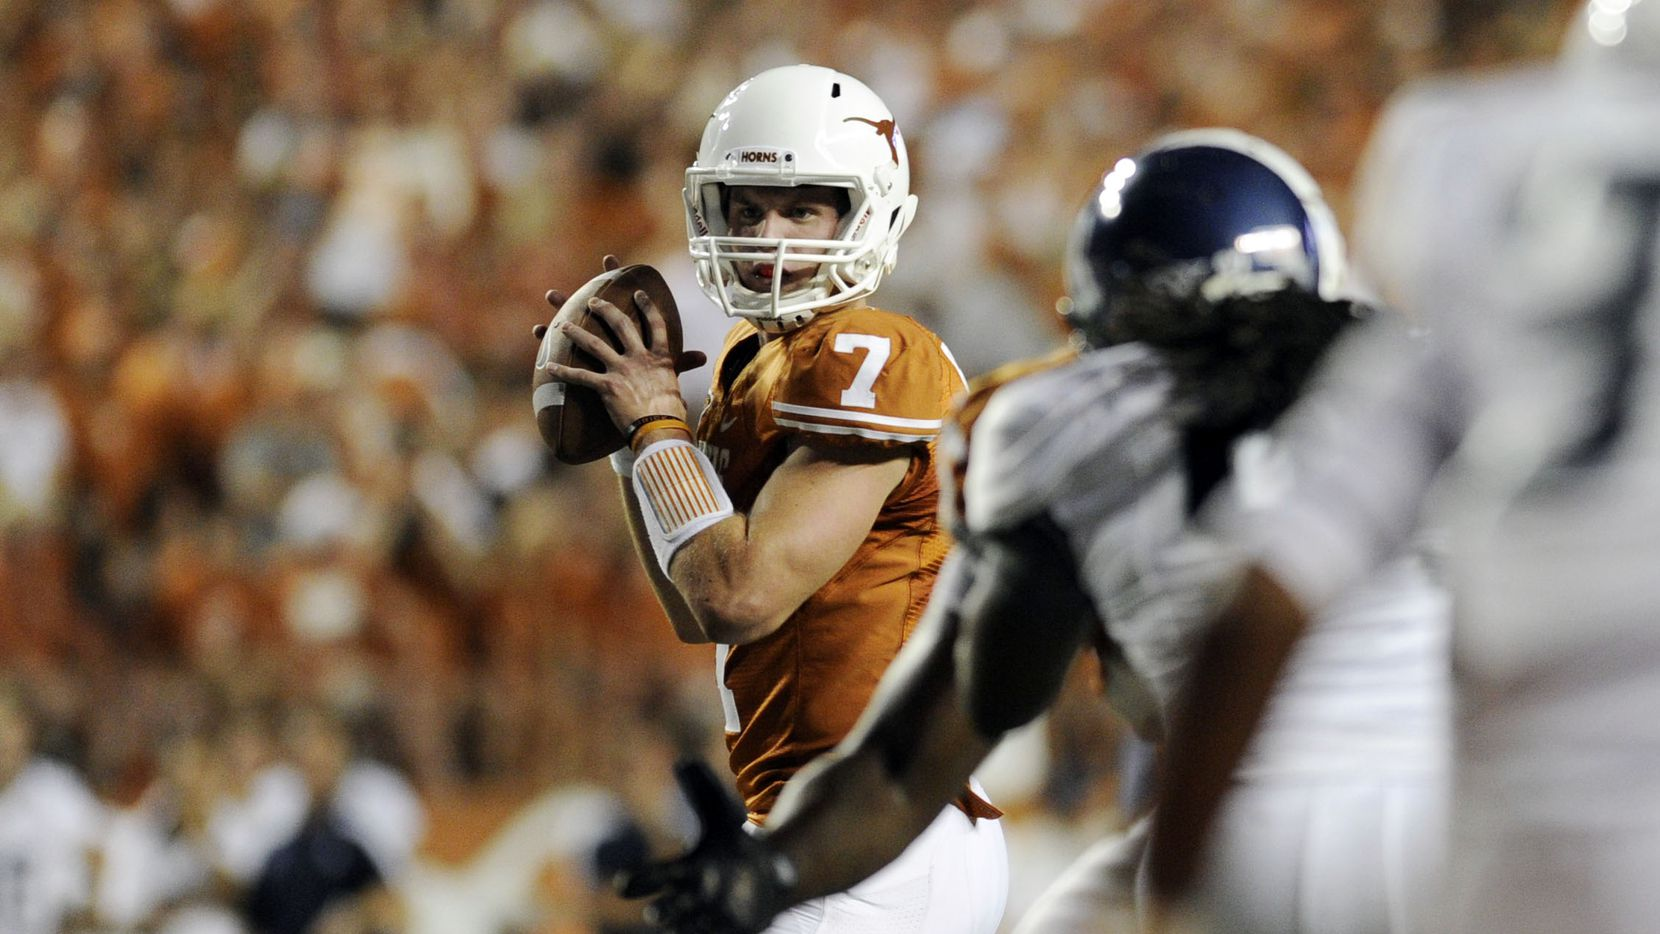 Garrett Gilbert S Goal Play As Smu Graduate Student With Texas Degree